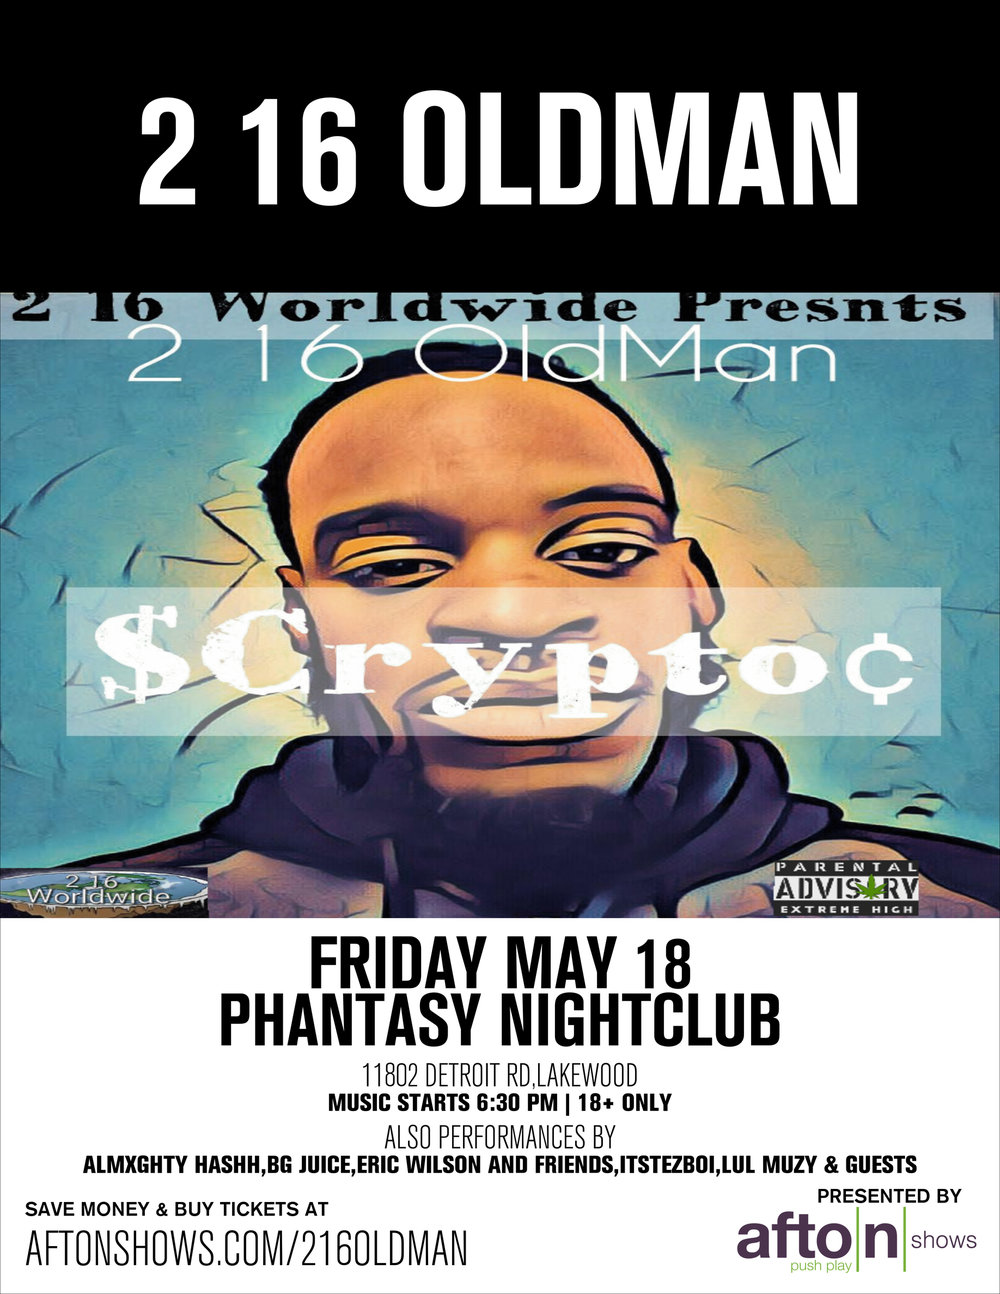 PhantasyNightclub-May18.jpg